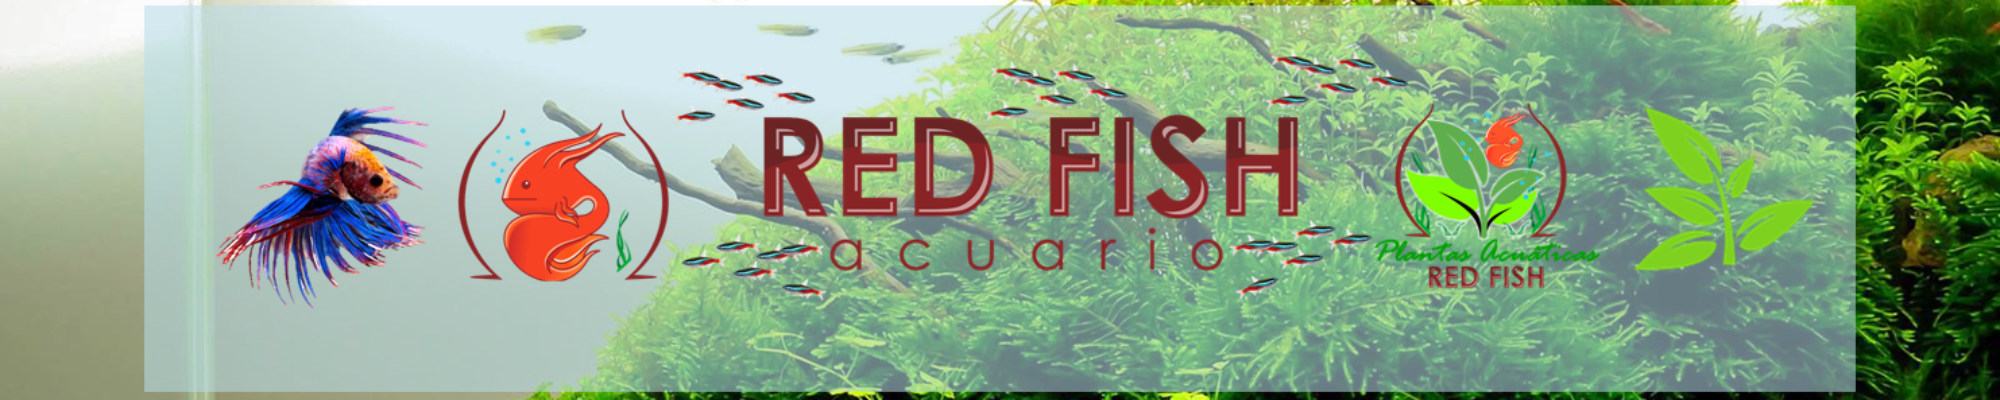 Acuario Red Fish